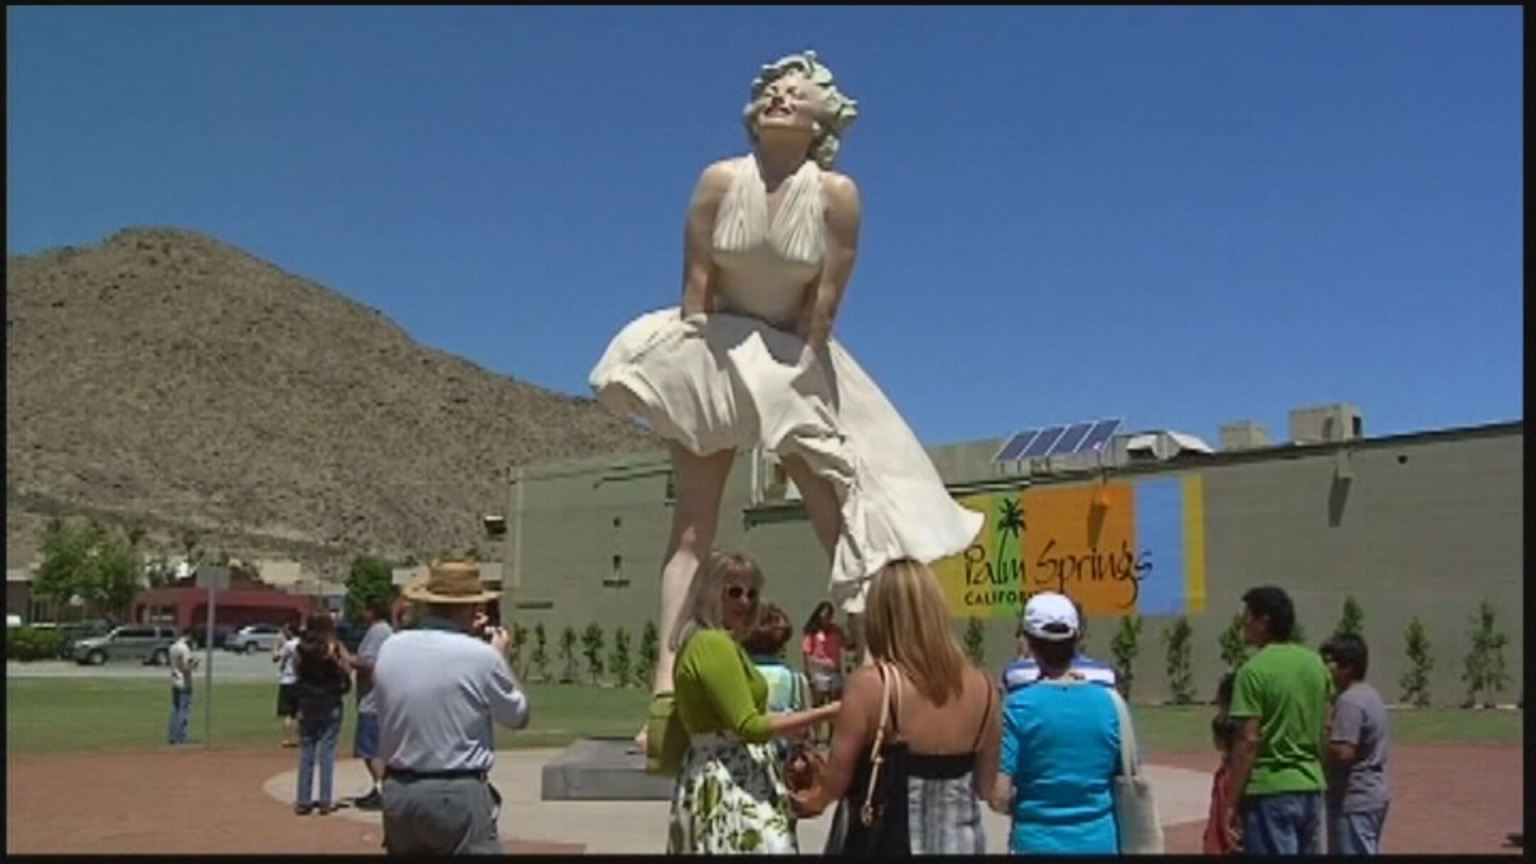 Group Files Lawsuit to Move Marilyn Statue